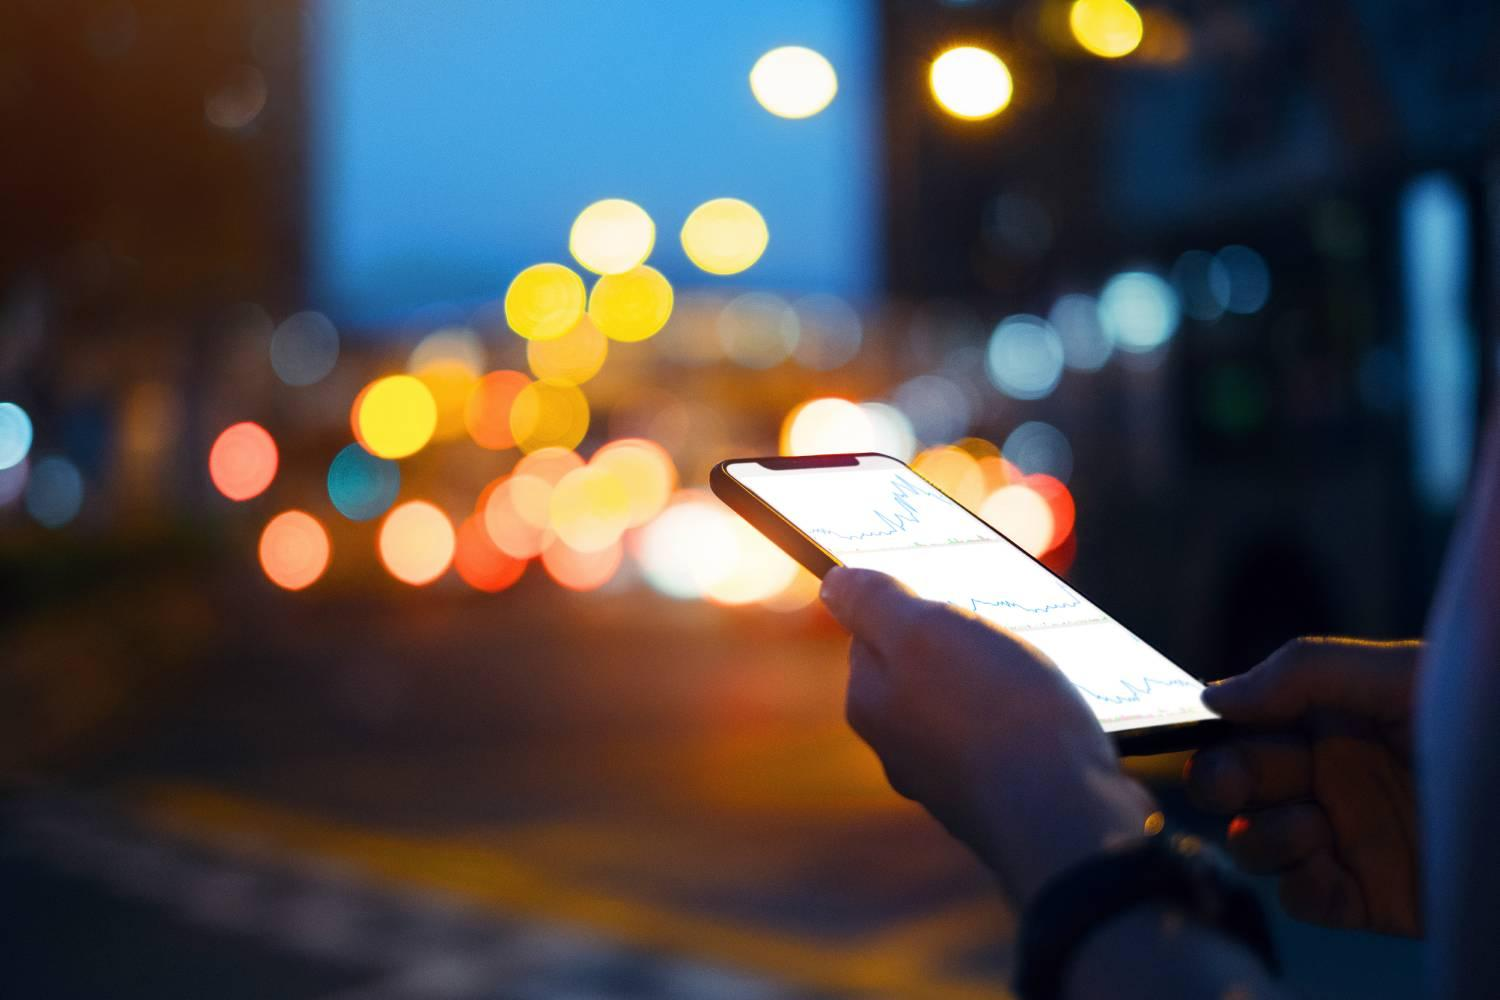 Close up of hands checking financial trading data on smartphone in city street at night